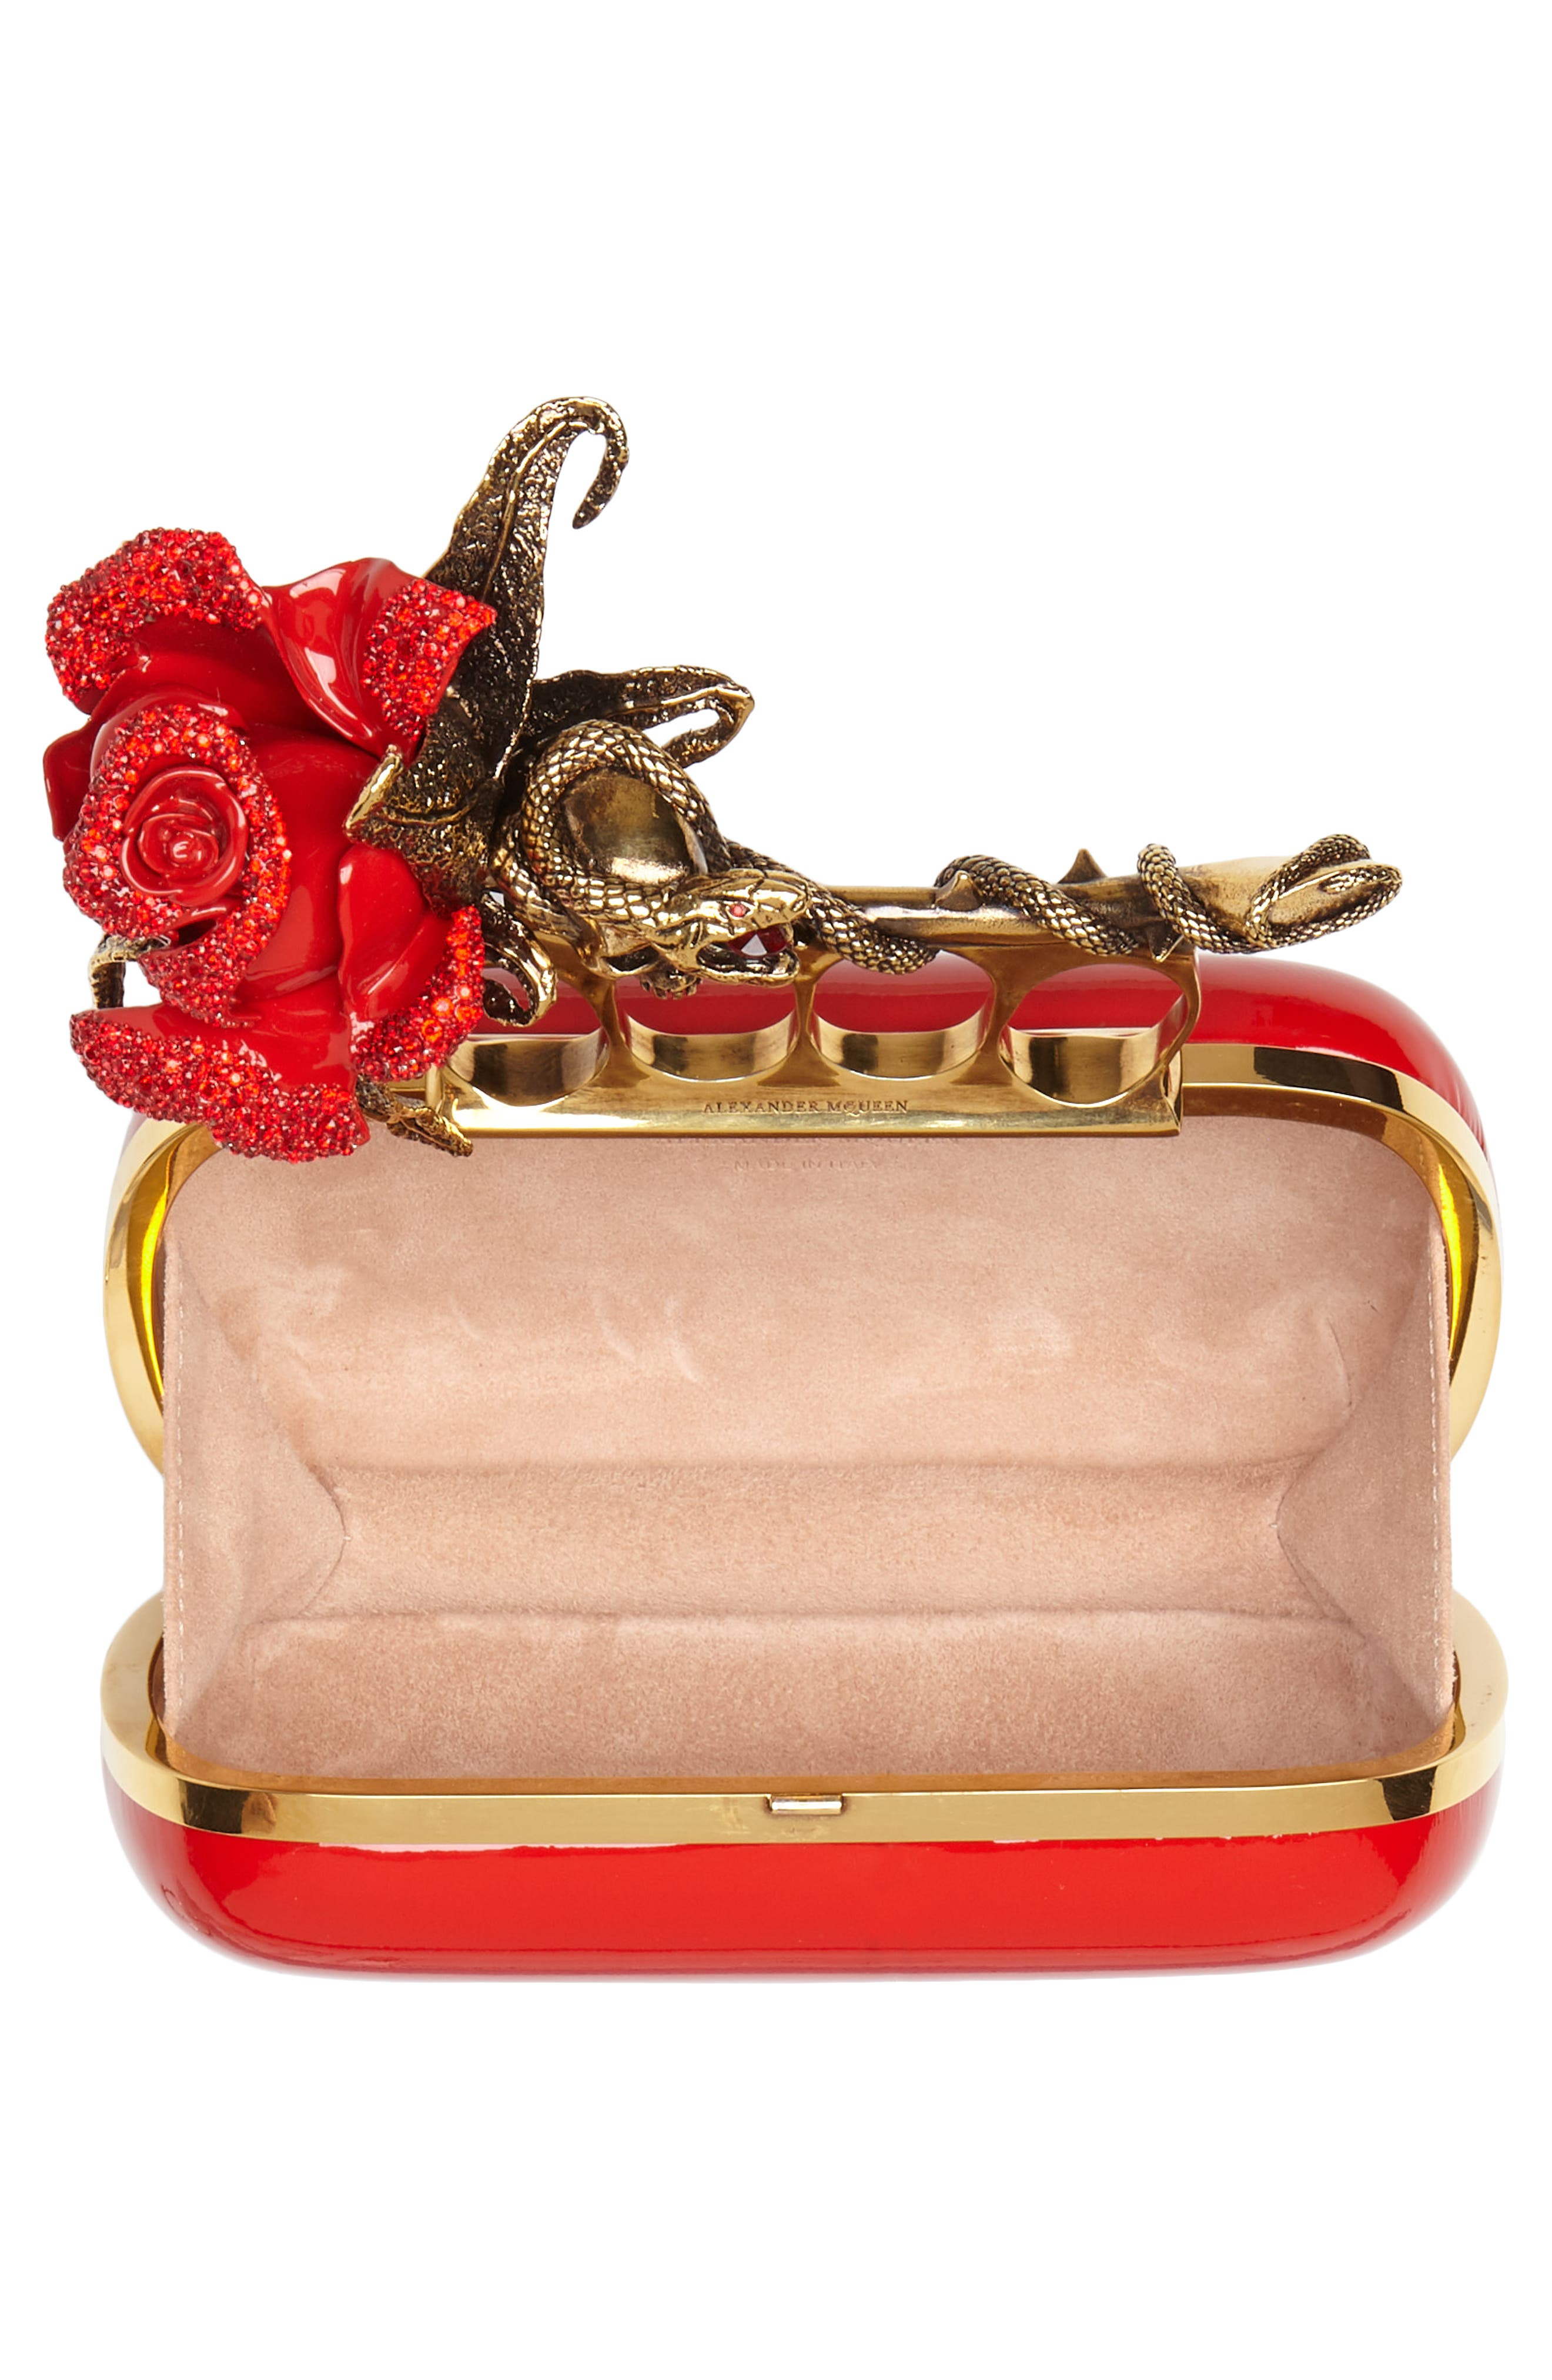 Knuckle Clasp Patent Leather Box Clutch,                             Alternate thumbnail 4, color,                             Lust Red